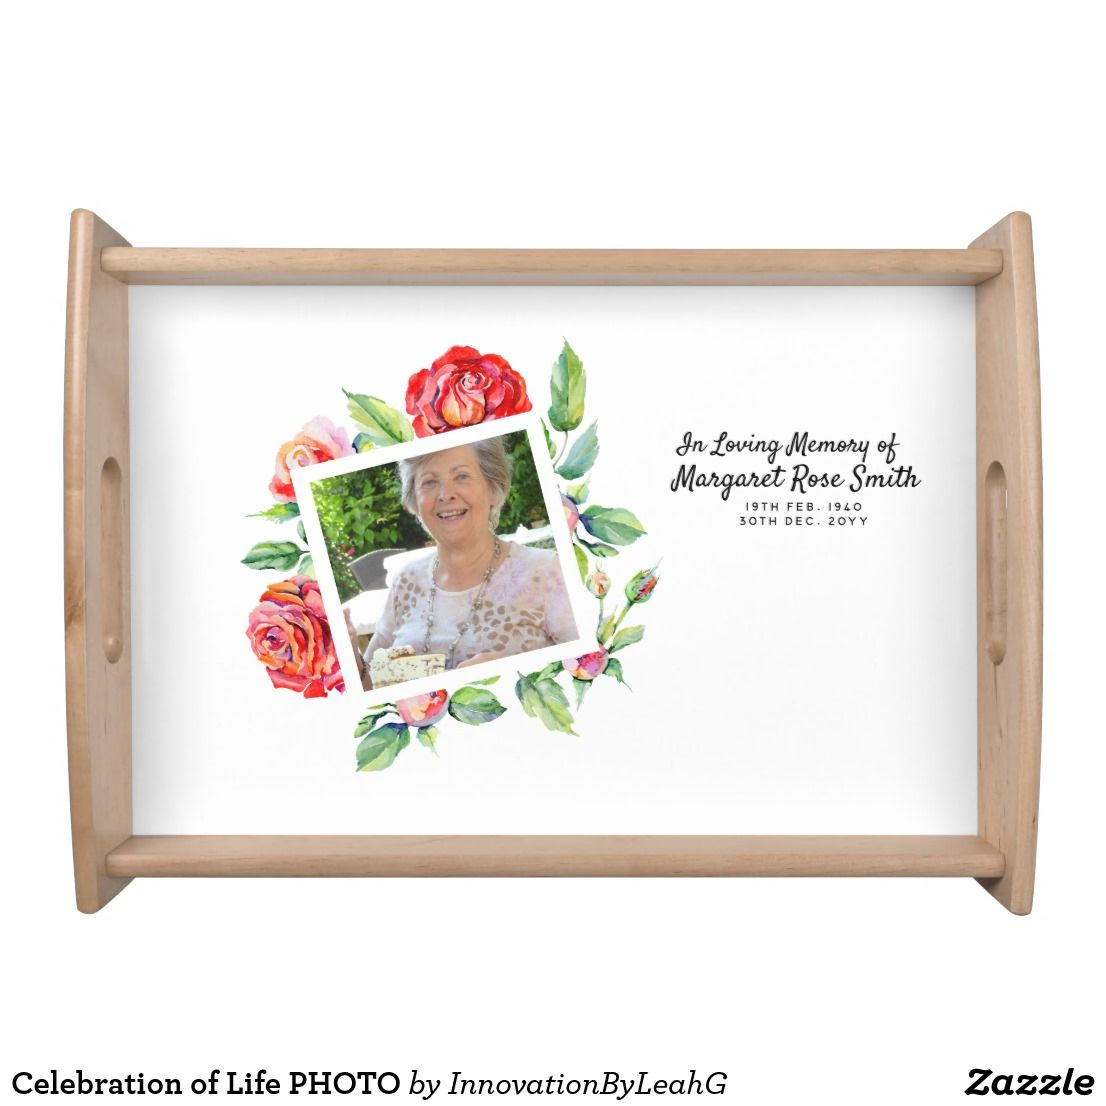 Memorial gift for loss of mother photo bereavement serving